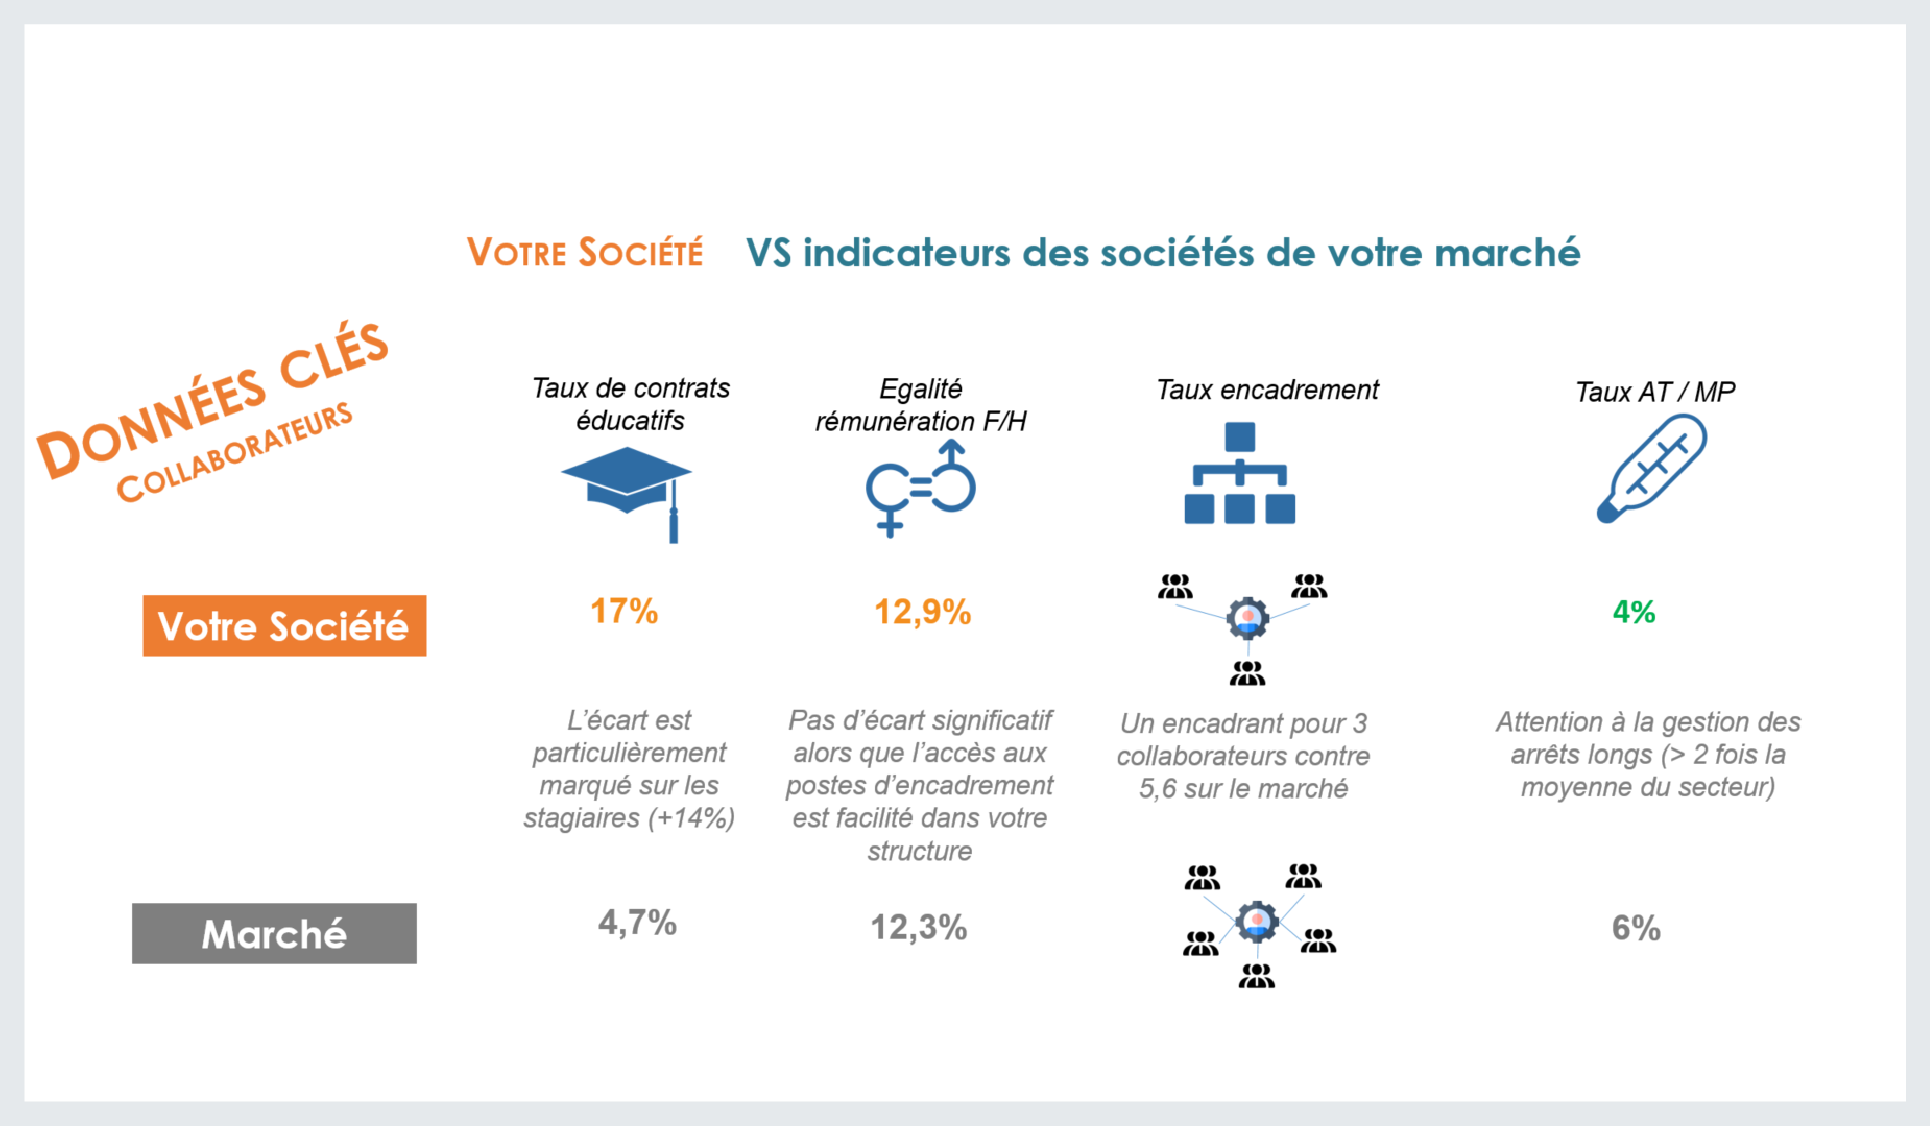 benchmark social cegedim srh comparatif indicateurs société vs indicateurs marché.png